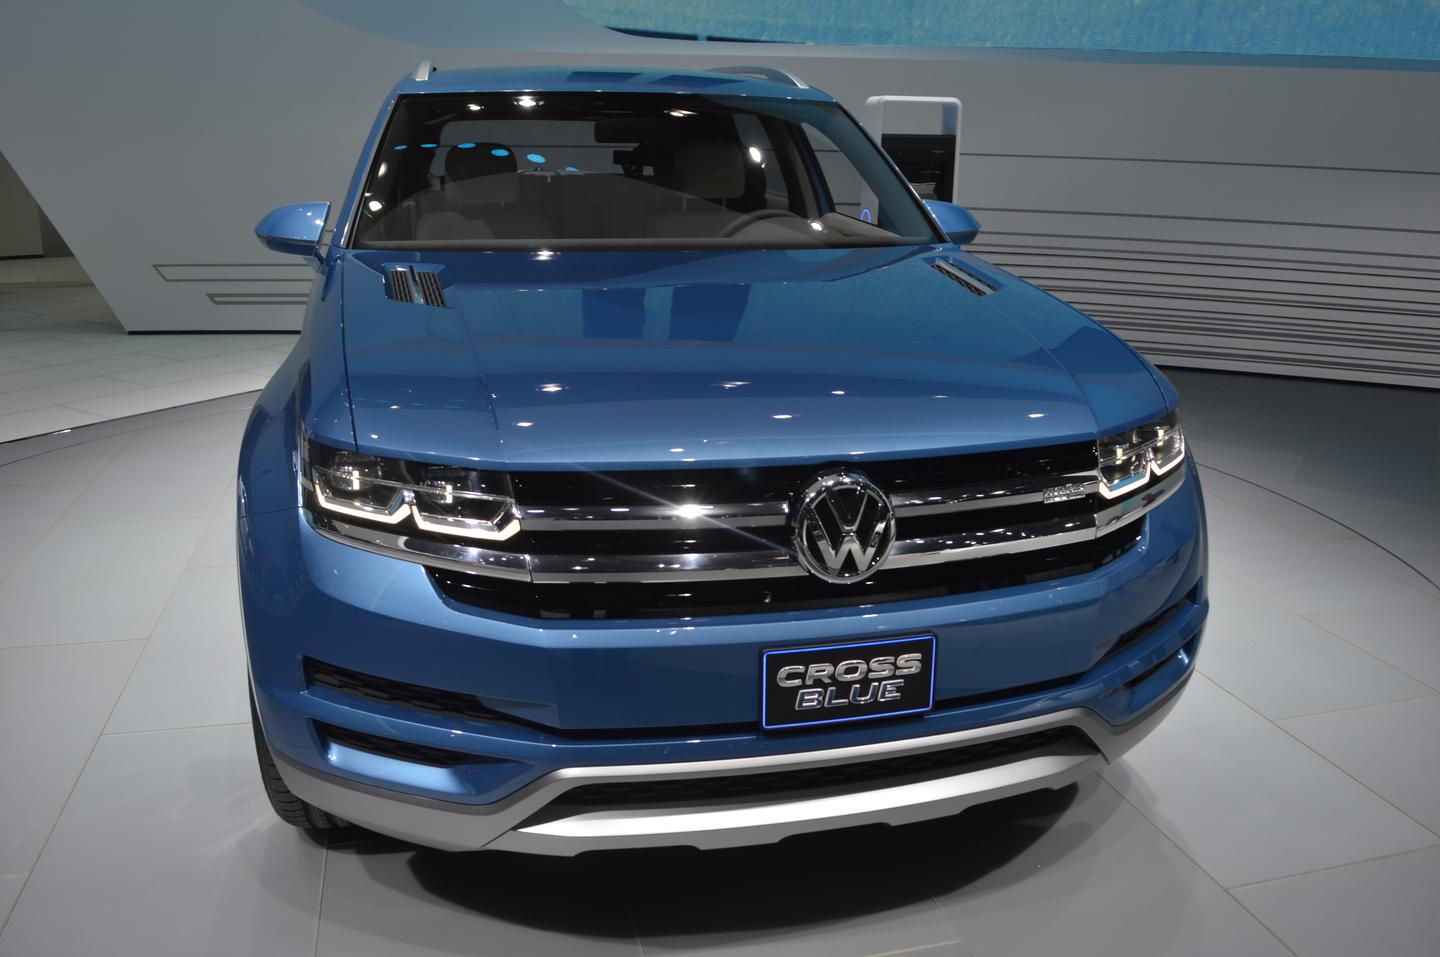 Volkswagen first showed the CrossBlue Coupe at the 2013 North American International Auto Show